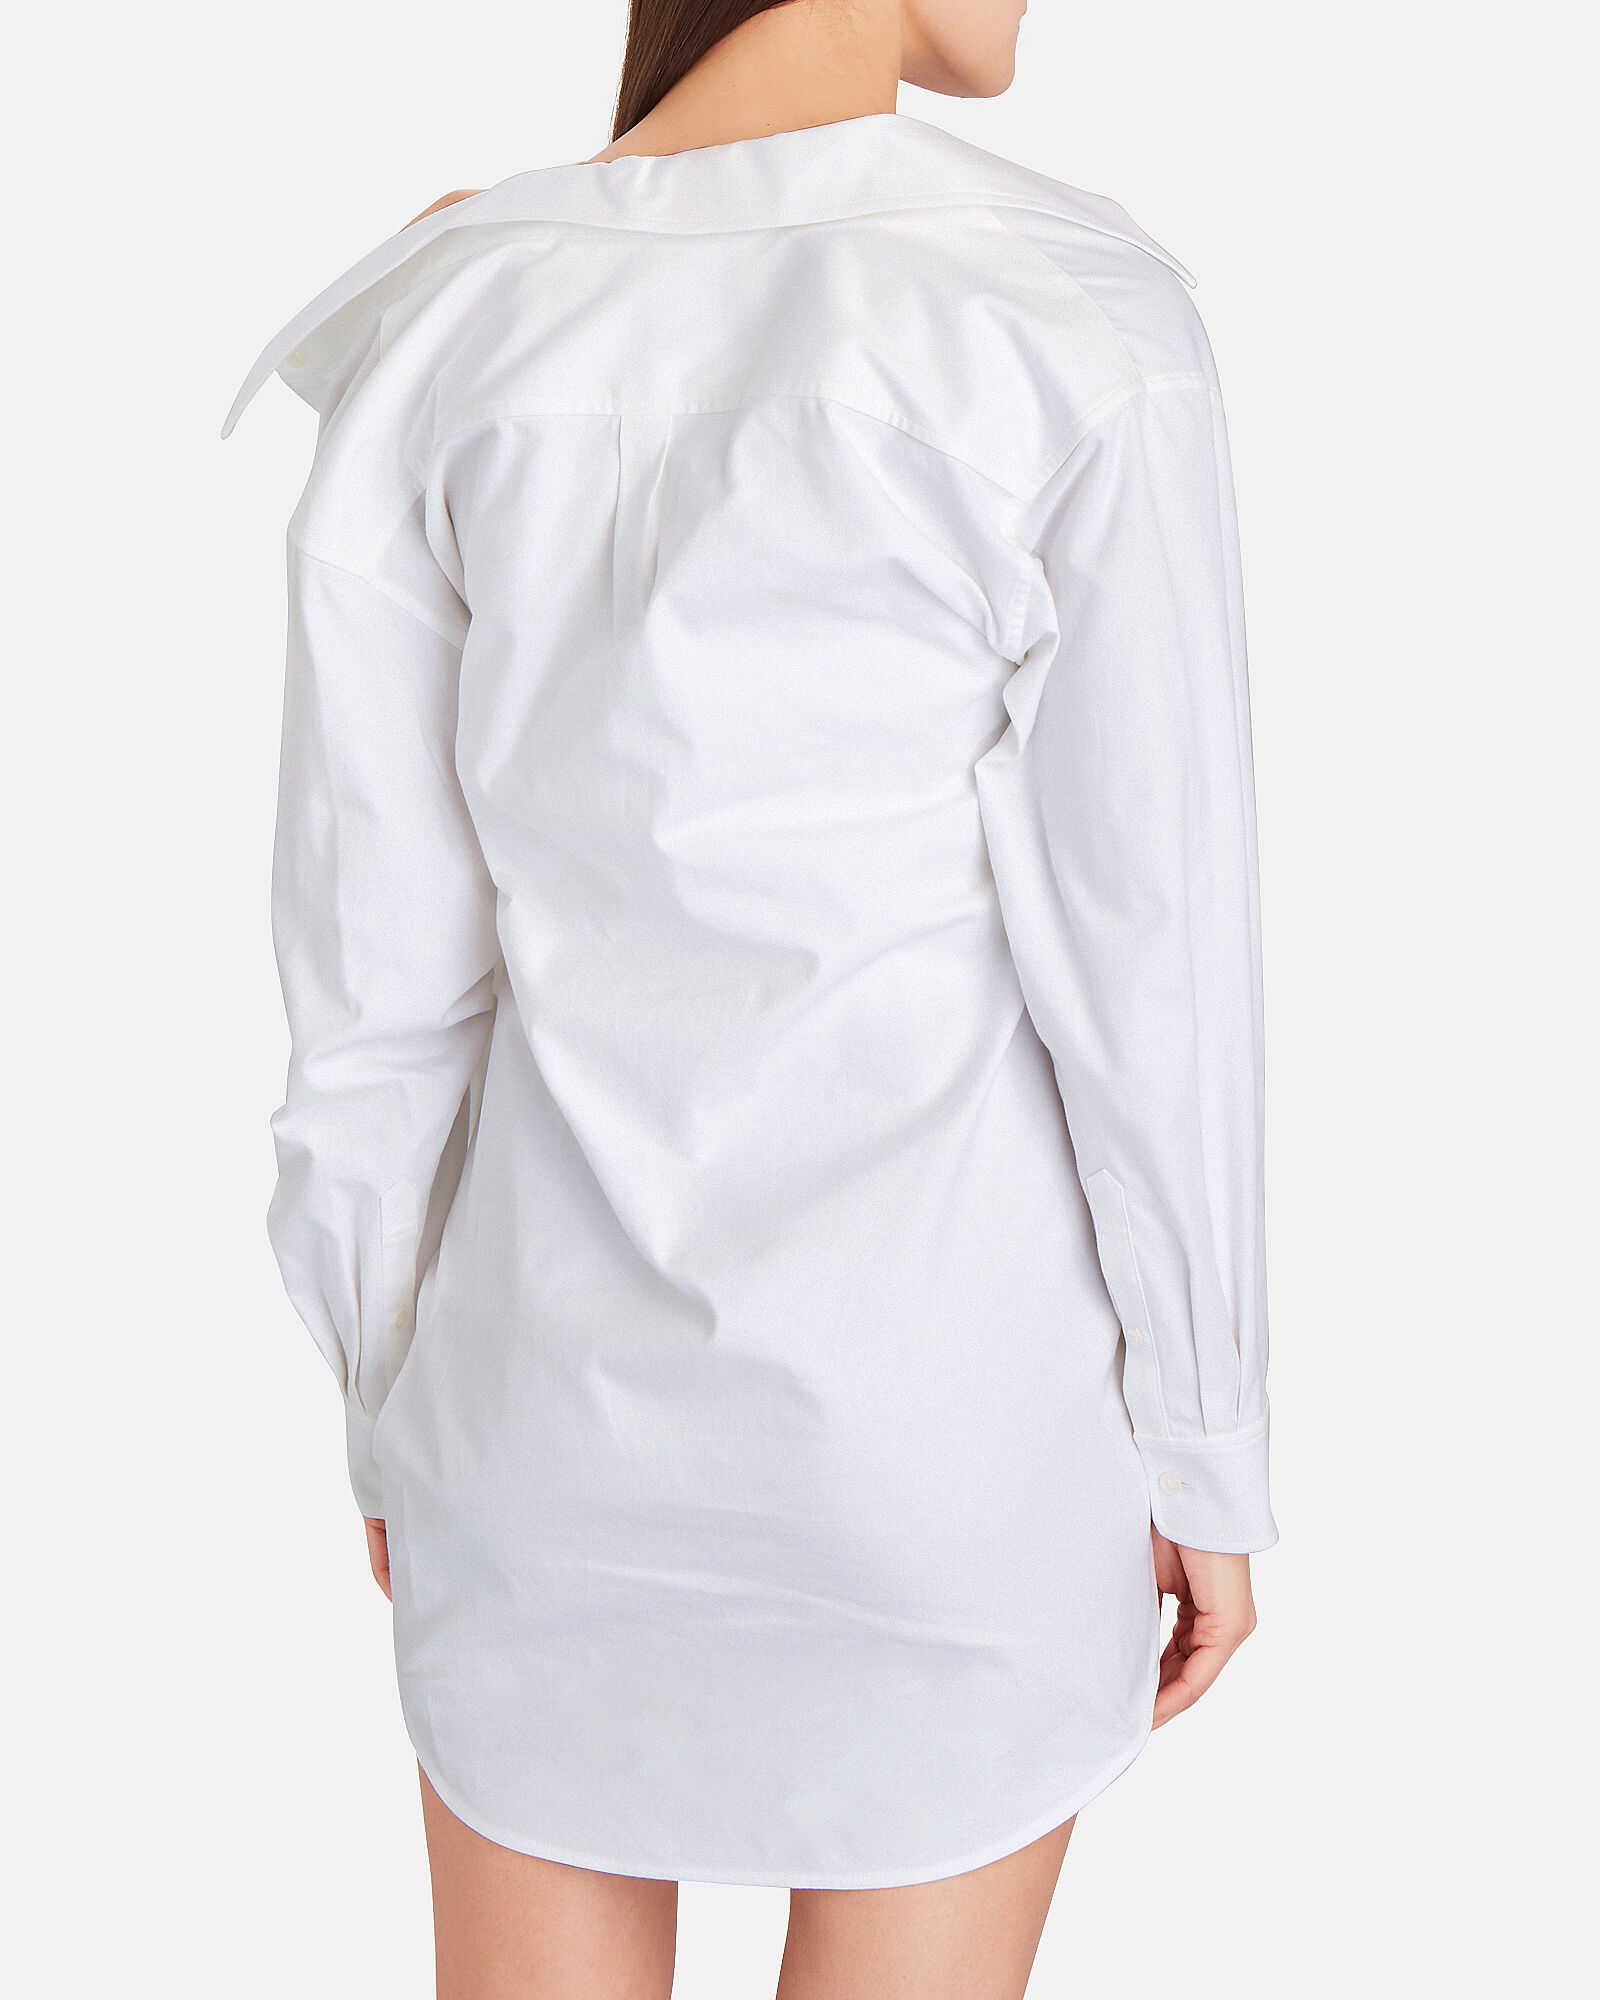 Falling Twist Layered Shirt Dress, WHITE, hi-res